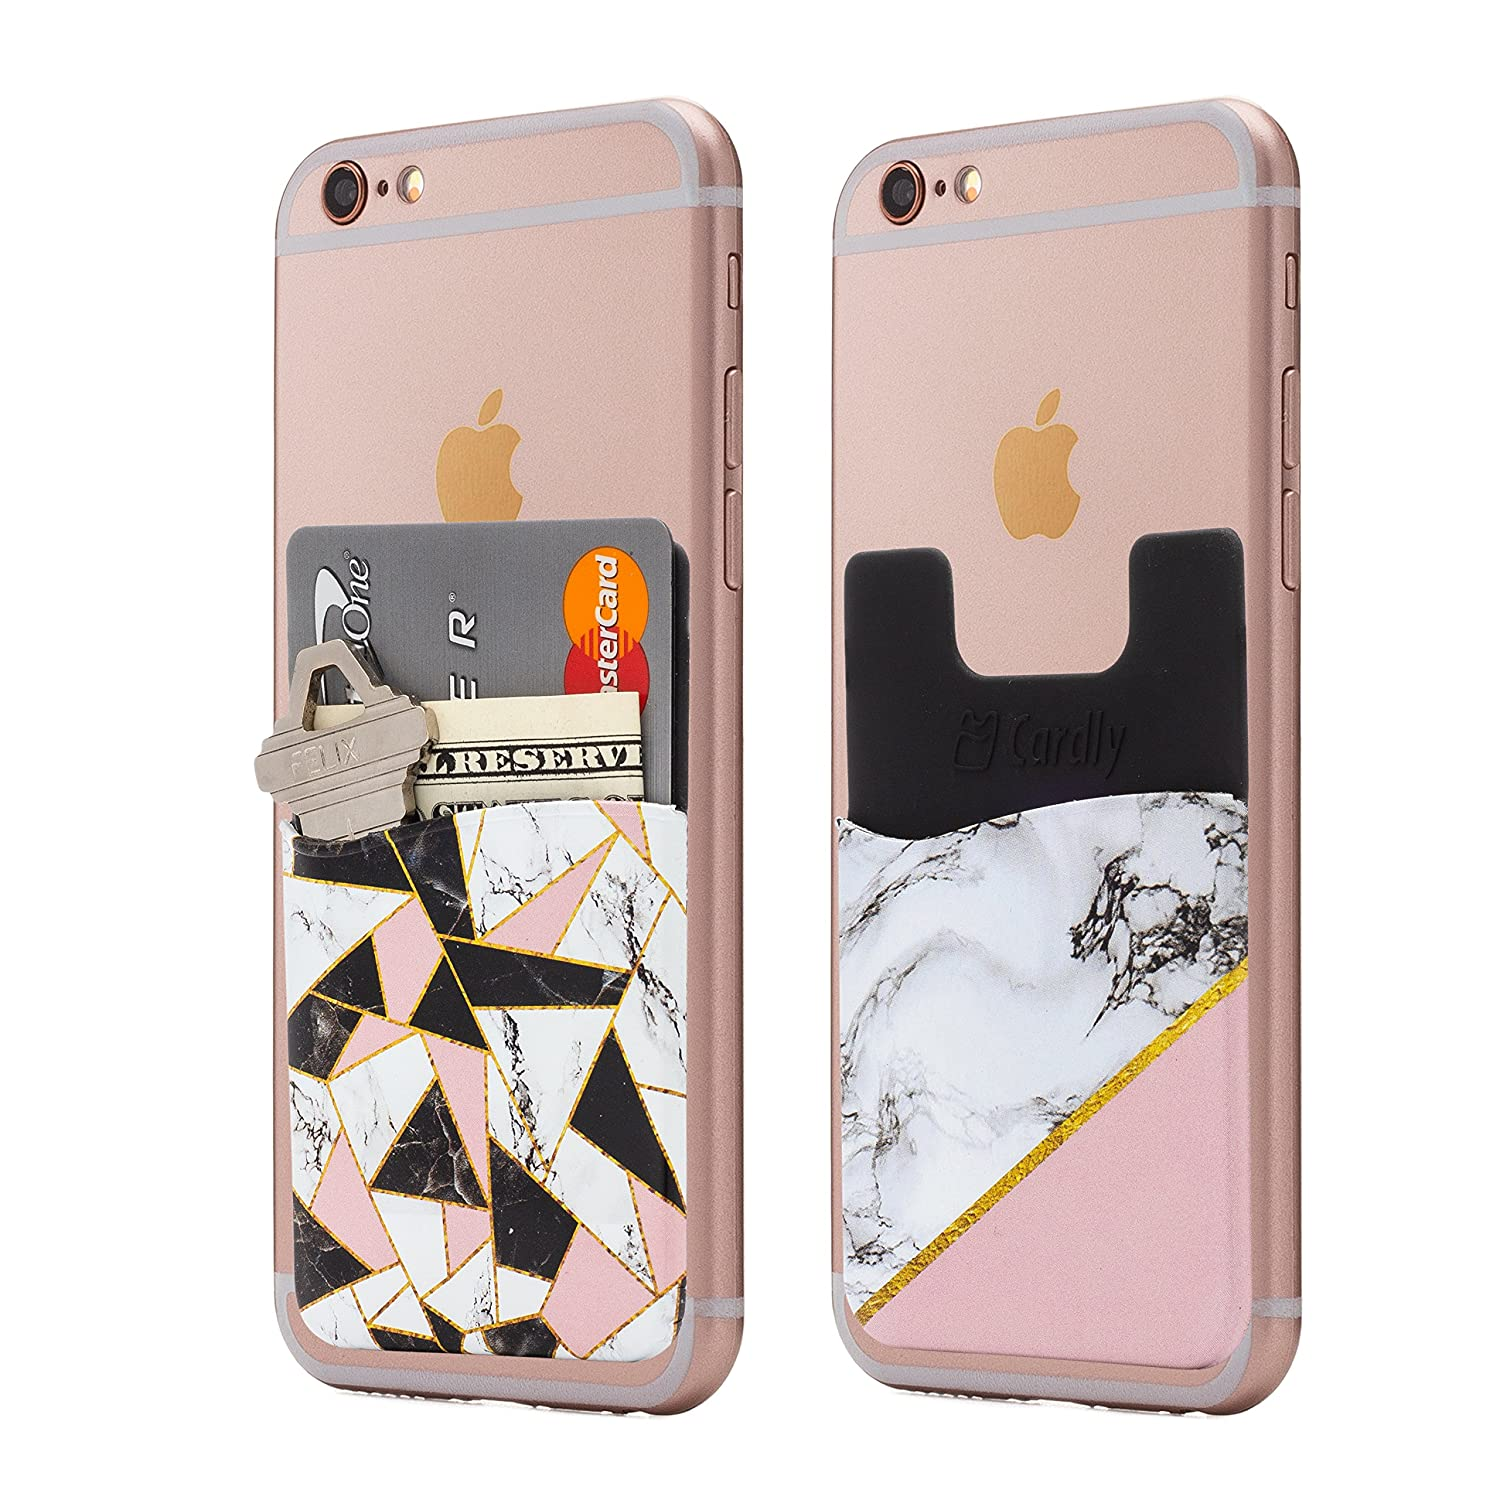 (Two) Marble cell phone stick on wallet card holder phone pocket for iPhone, Android and all smartphones (Shattered) Cardly